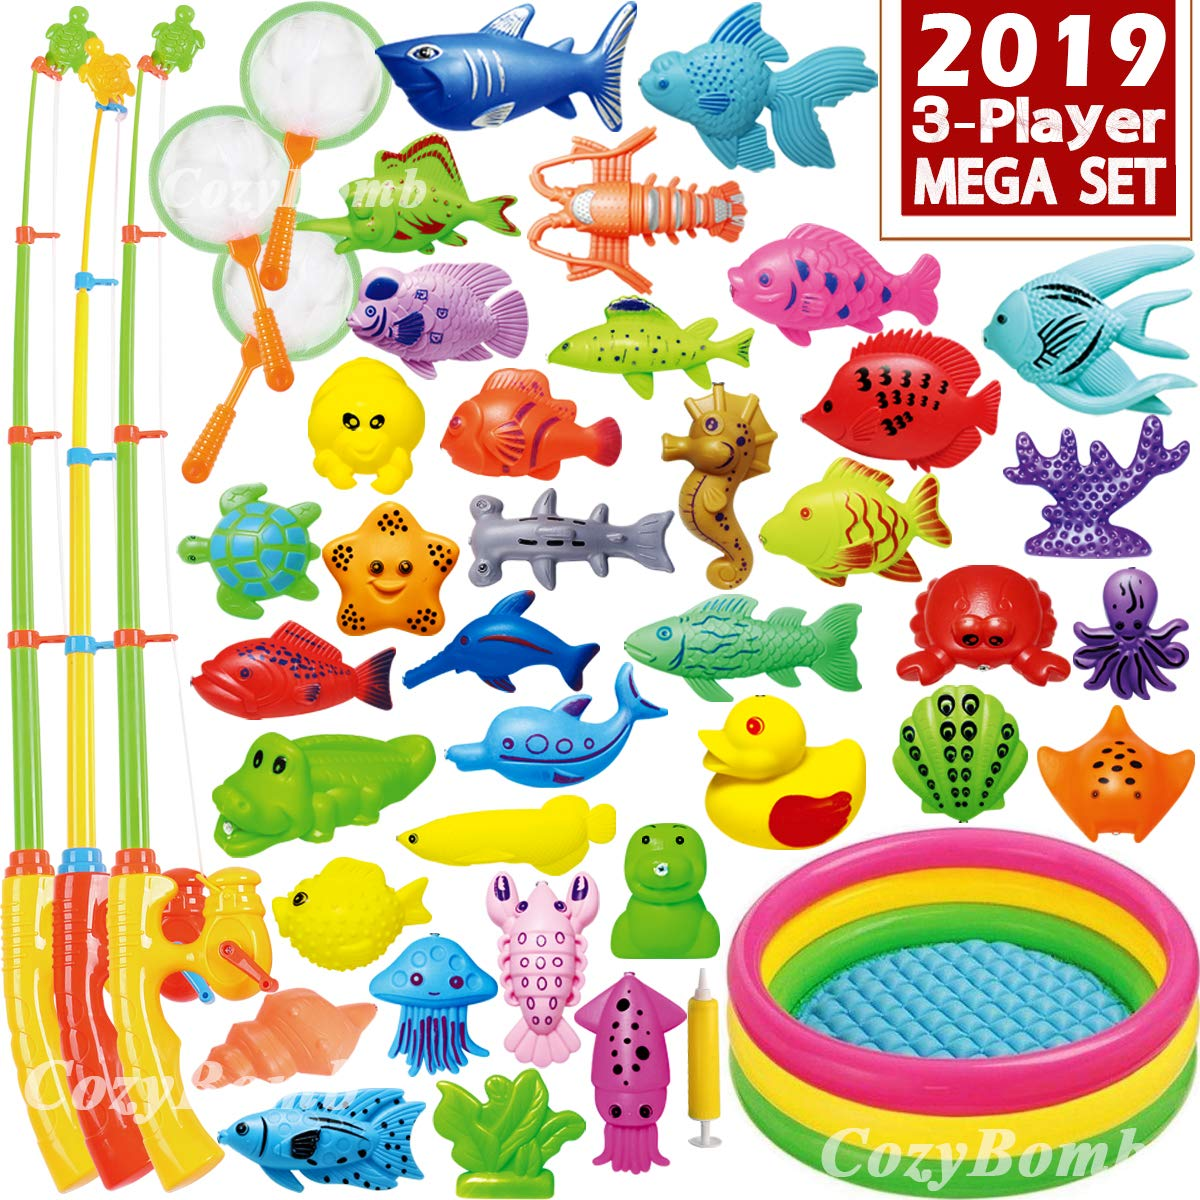 CozyBomB Magnetic Fishing Game Toys Mega Set - 57 Pcs Summer Outdoor Backyard Water Toy with Kiddie Pool, Floating Pole Rod Net Fish - Kids Toddler Education Teaching and Learning (Mega) by CozyBomB